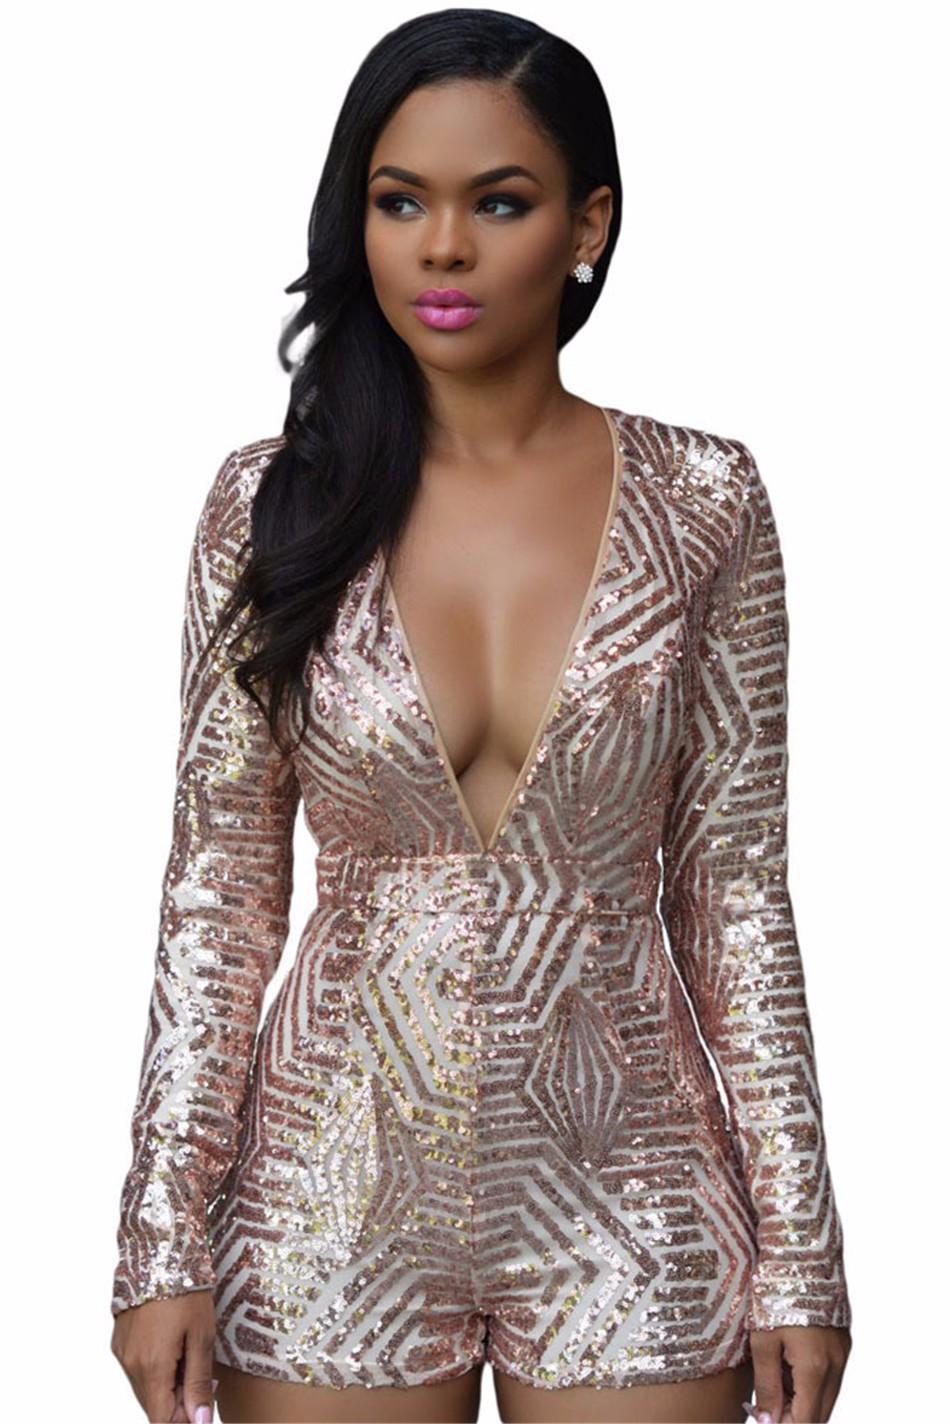 ABYABYGO Sexy Overalls Rompers Women Bodycon Jumpsuit Shorts Sequin Long Sleeve Catsuit Salopette Jumpsuit Beyonce Body Suit 6